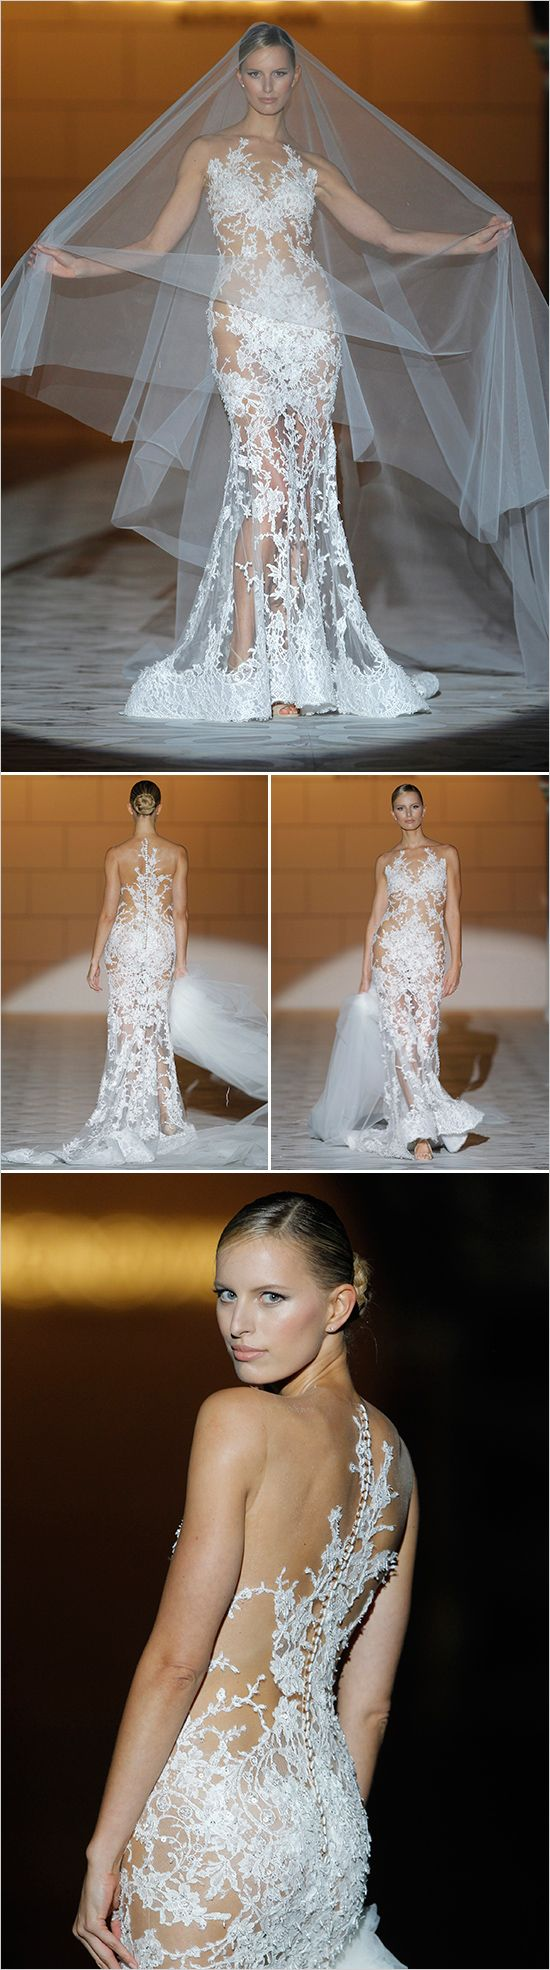 The best images about wedding dress on pinterest russian